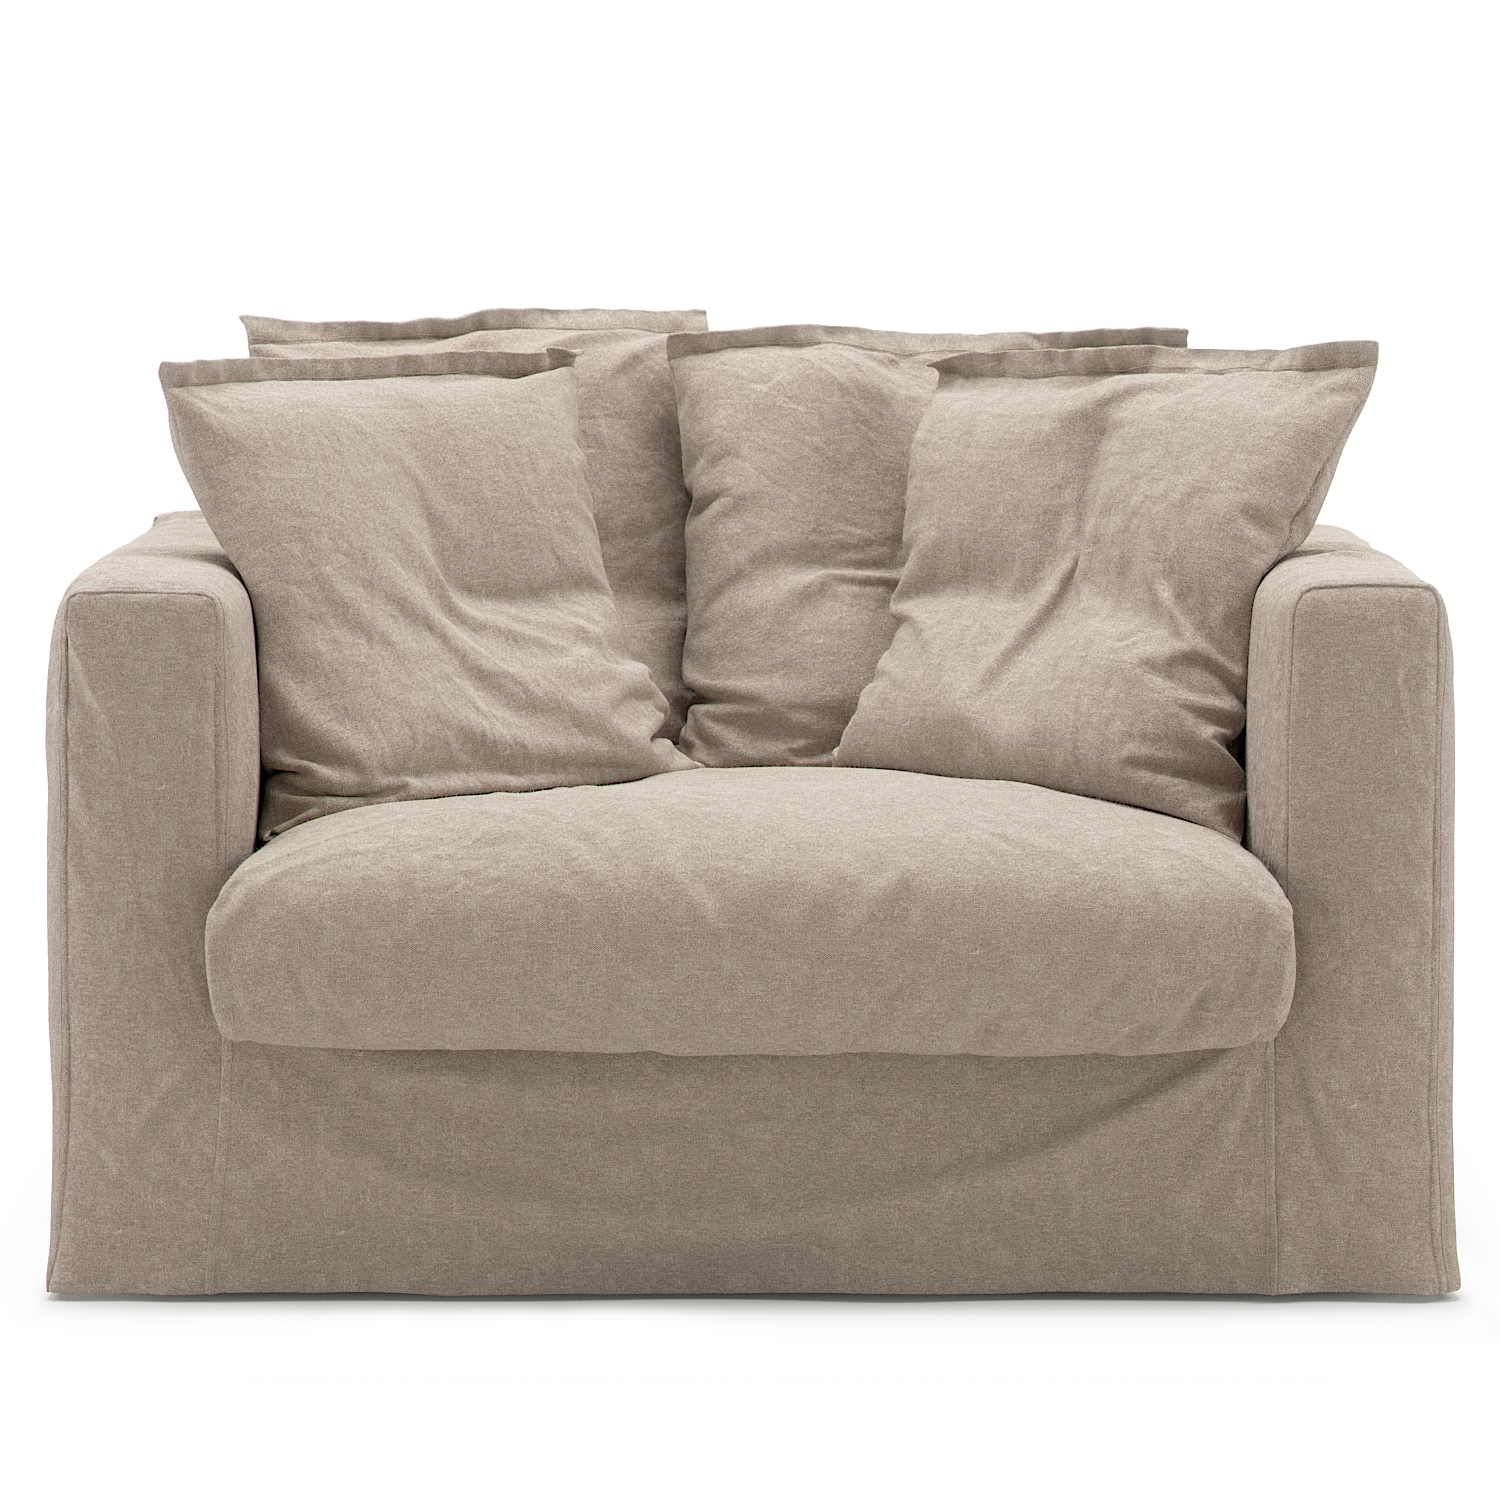 Le Grand Air Loveseat Linne, Savage Linen